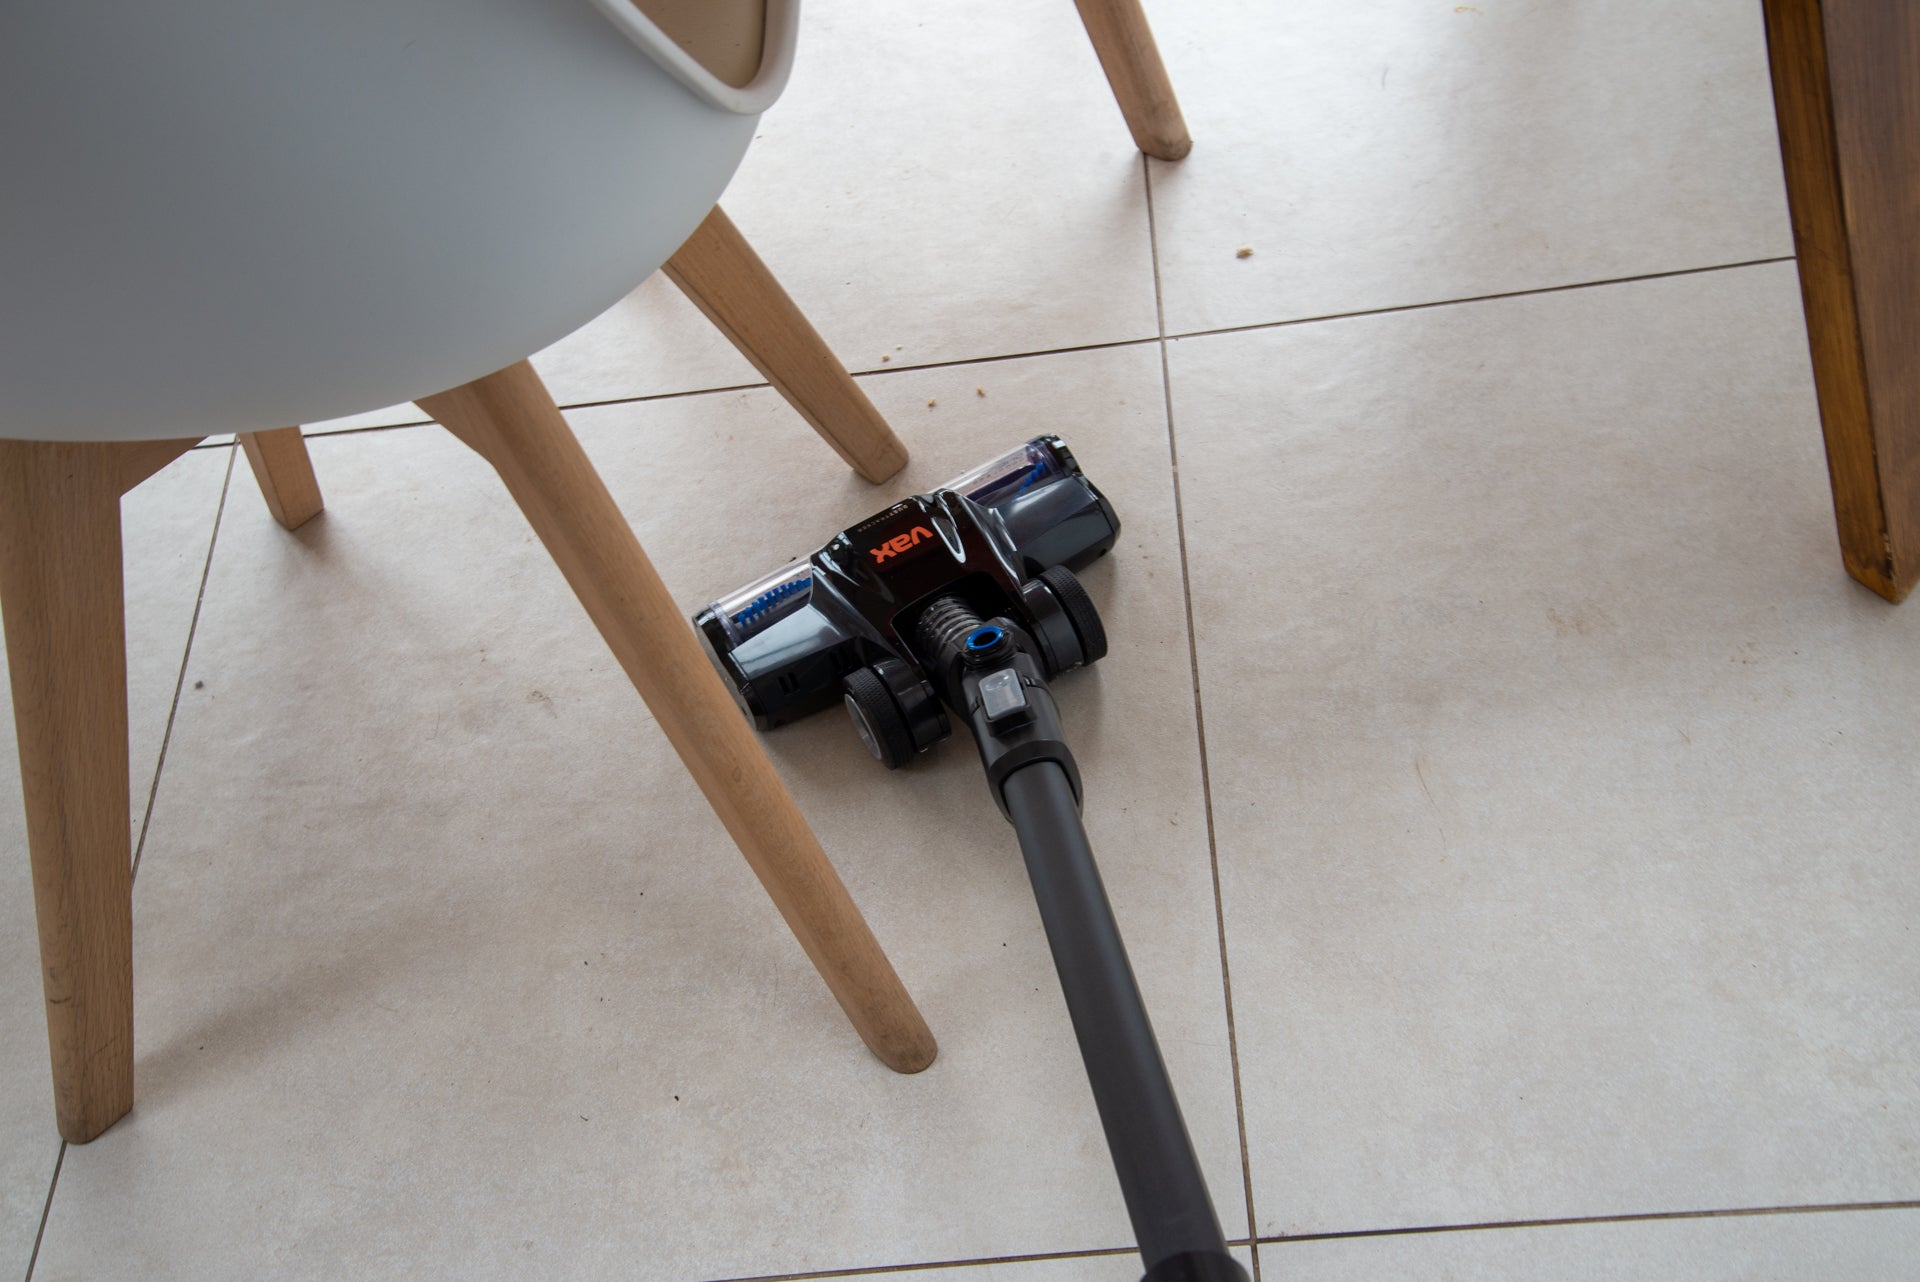 Vax ONEPWR Blade 4 cleaning furniture